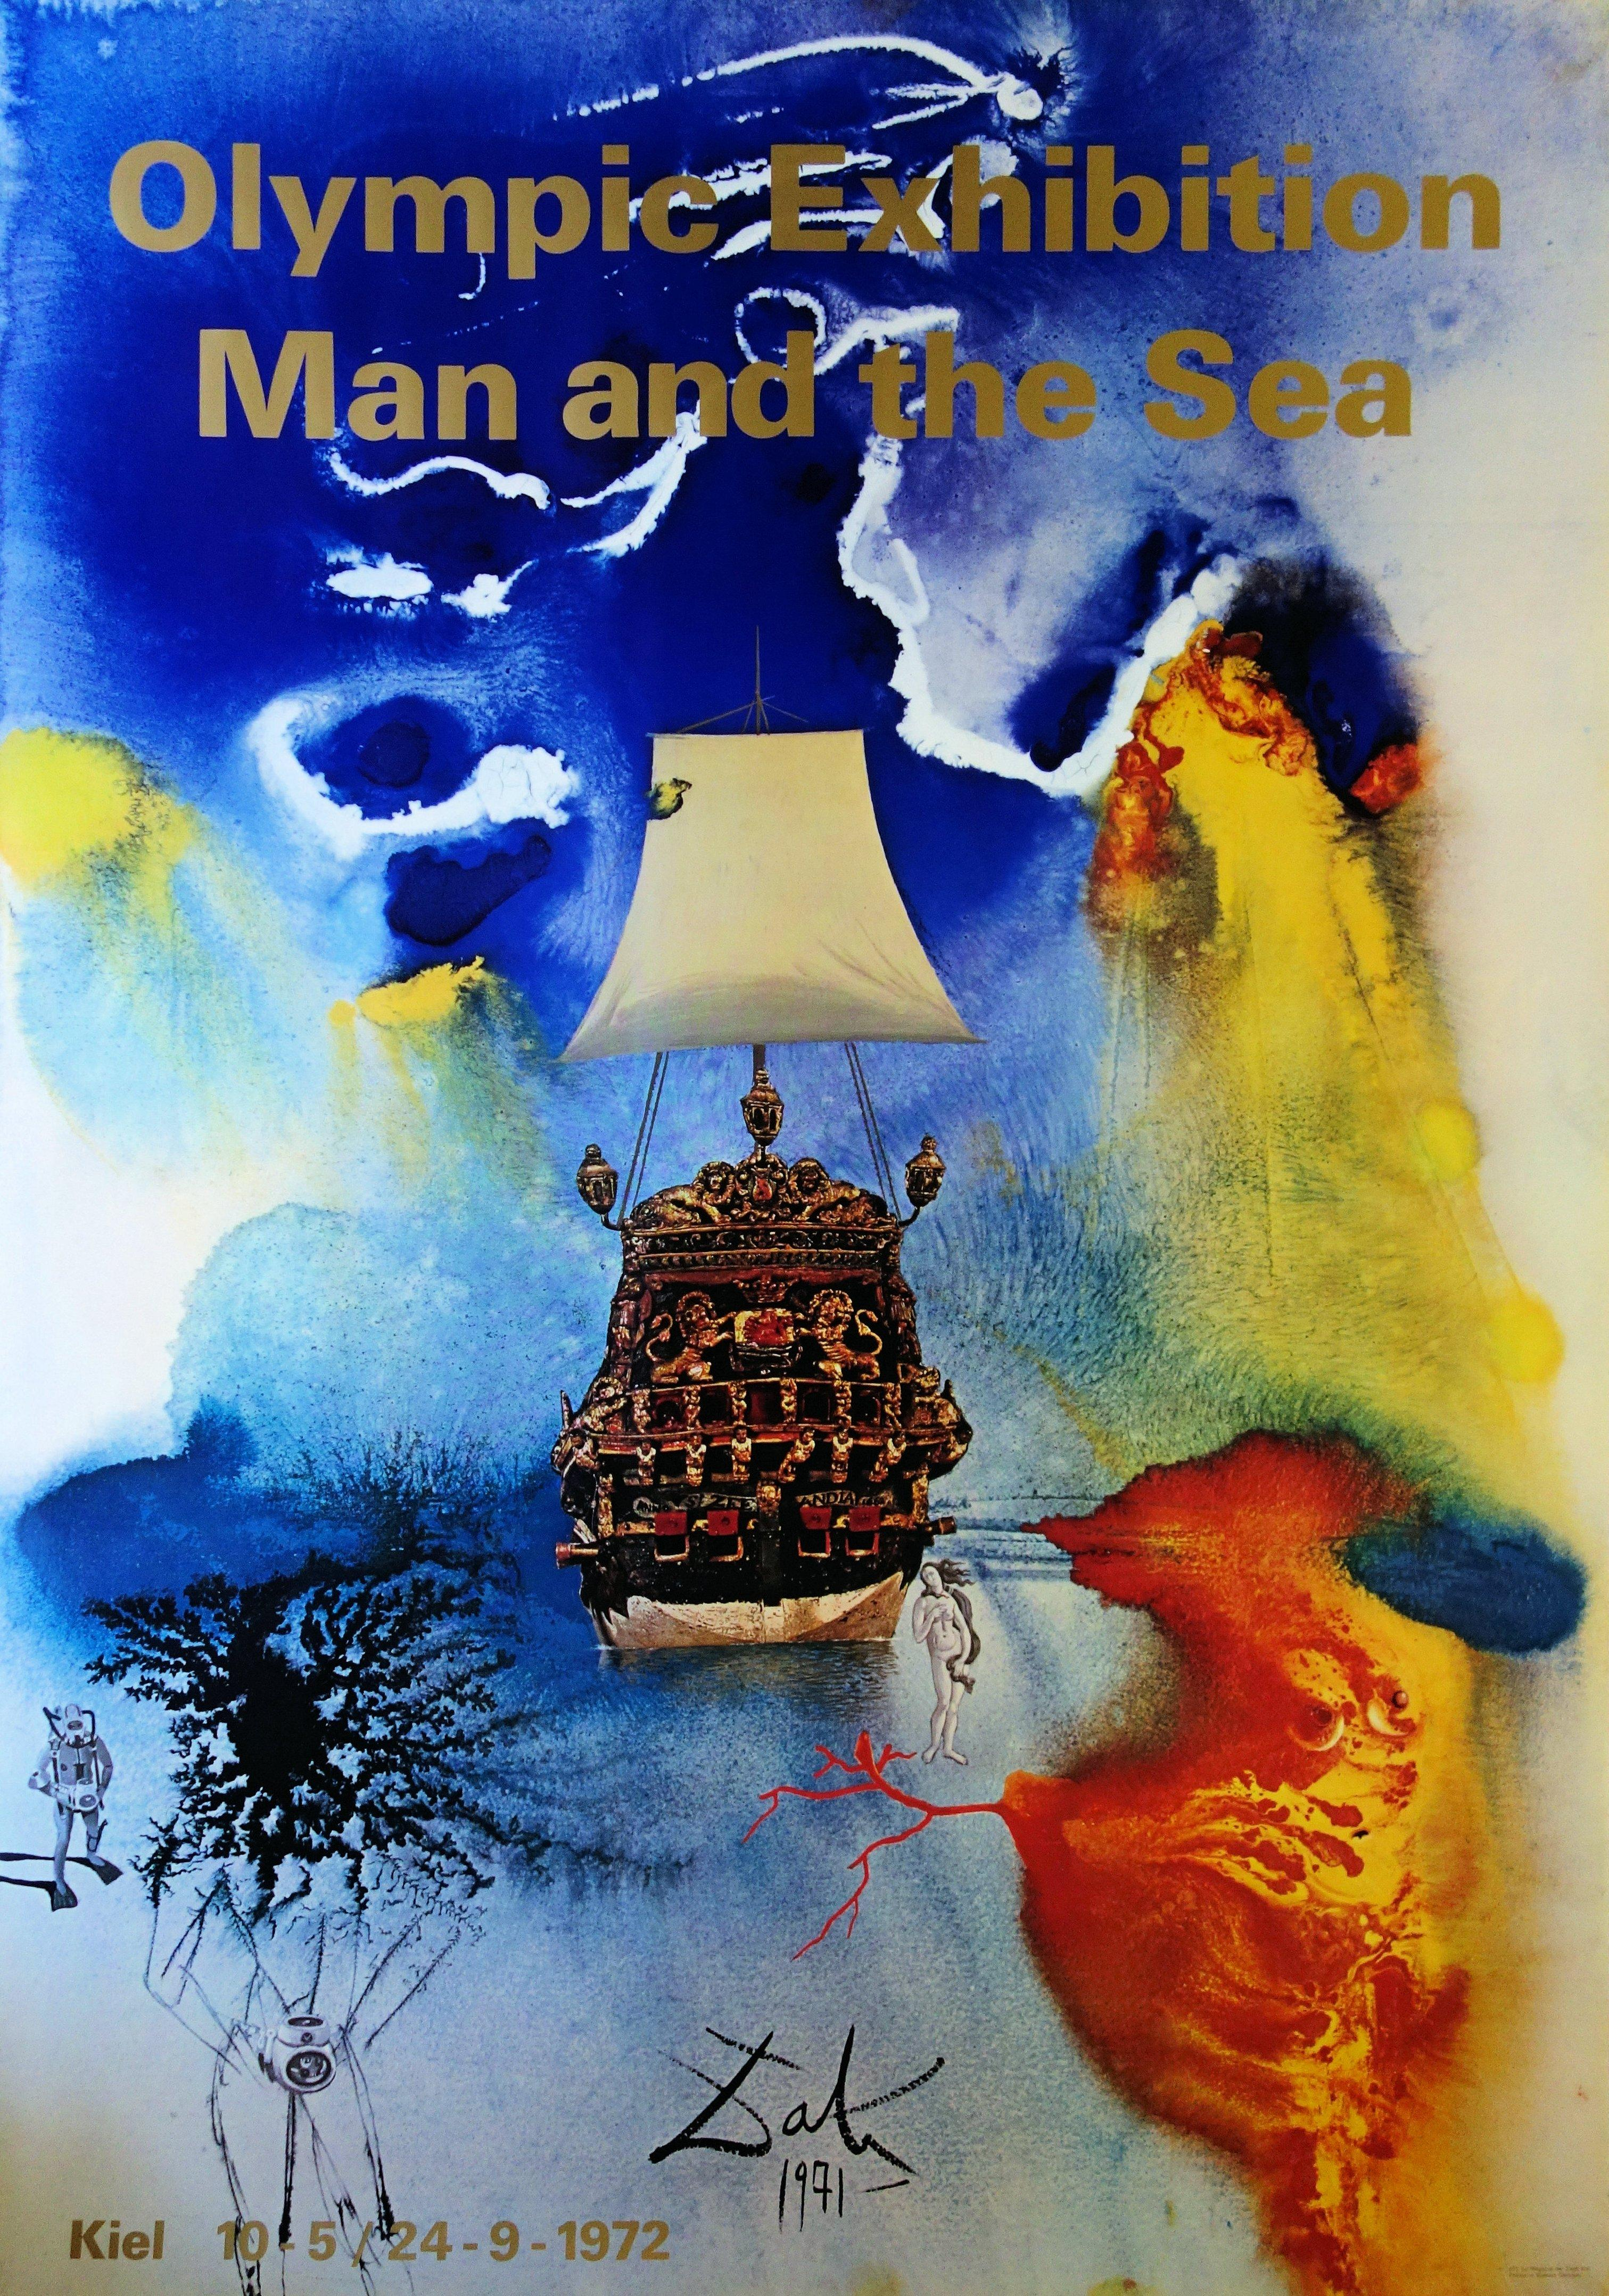 Man and Sea - Vintage exhibition poster - 1972